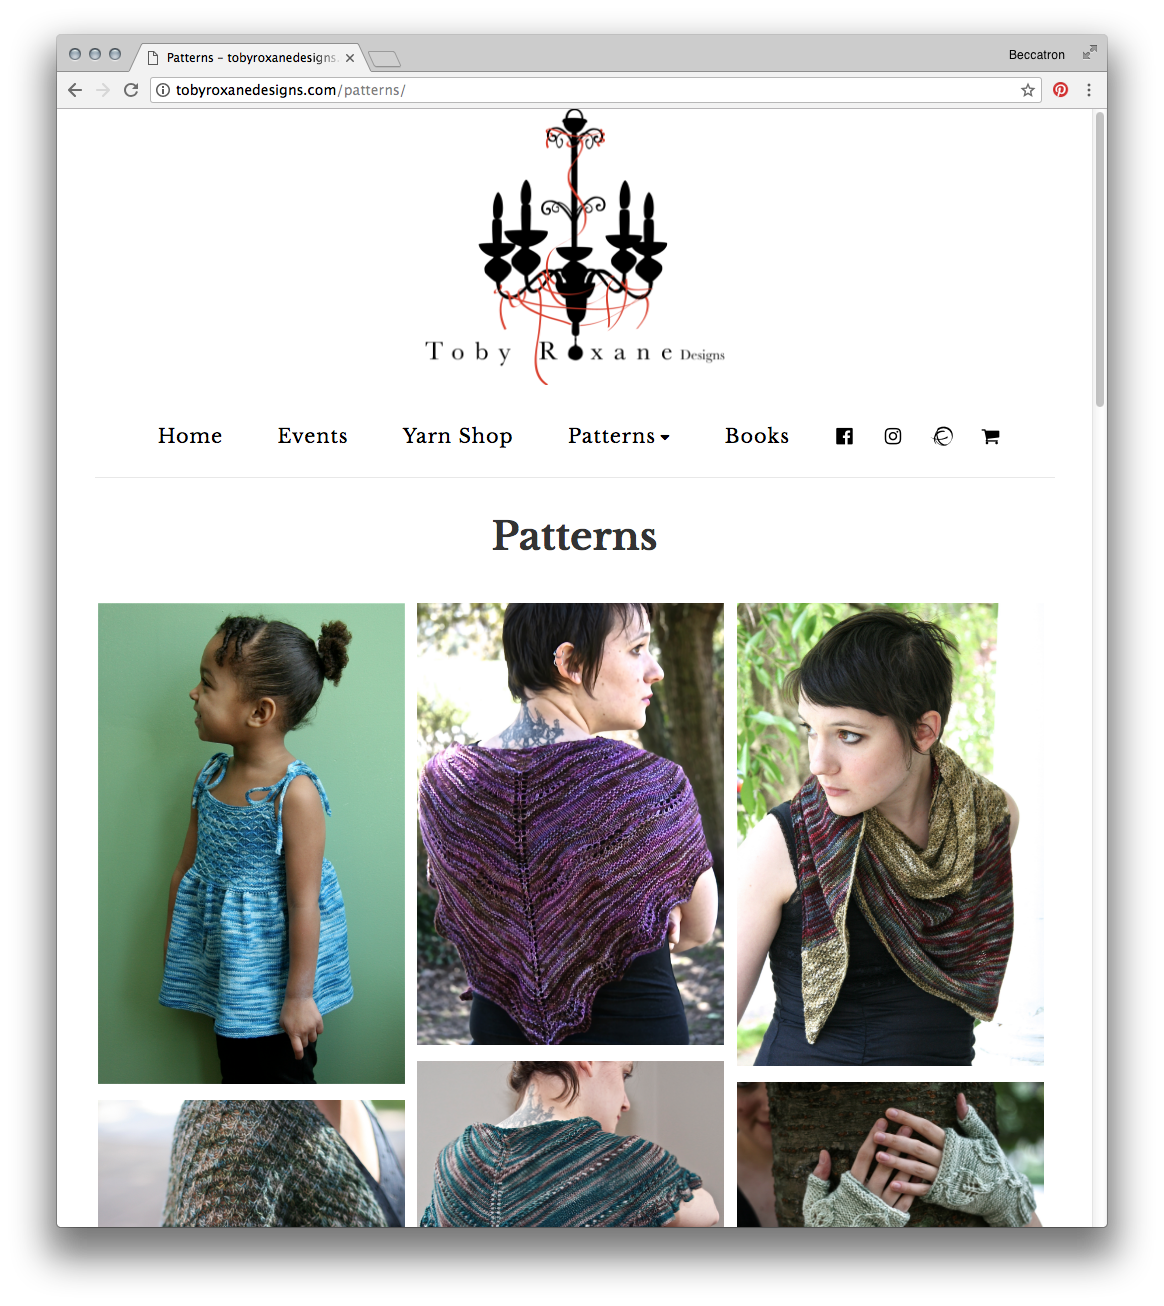 Screenshot, patterns page